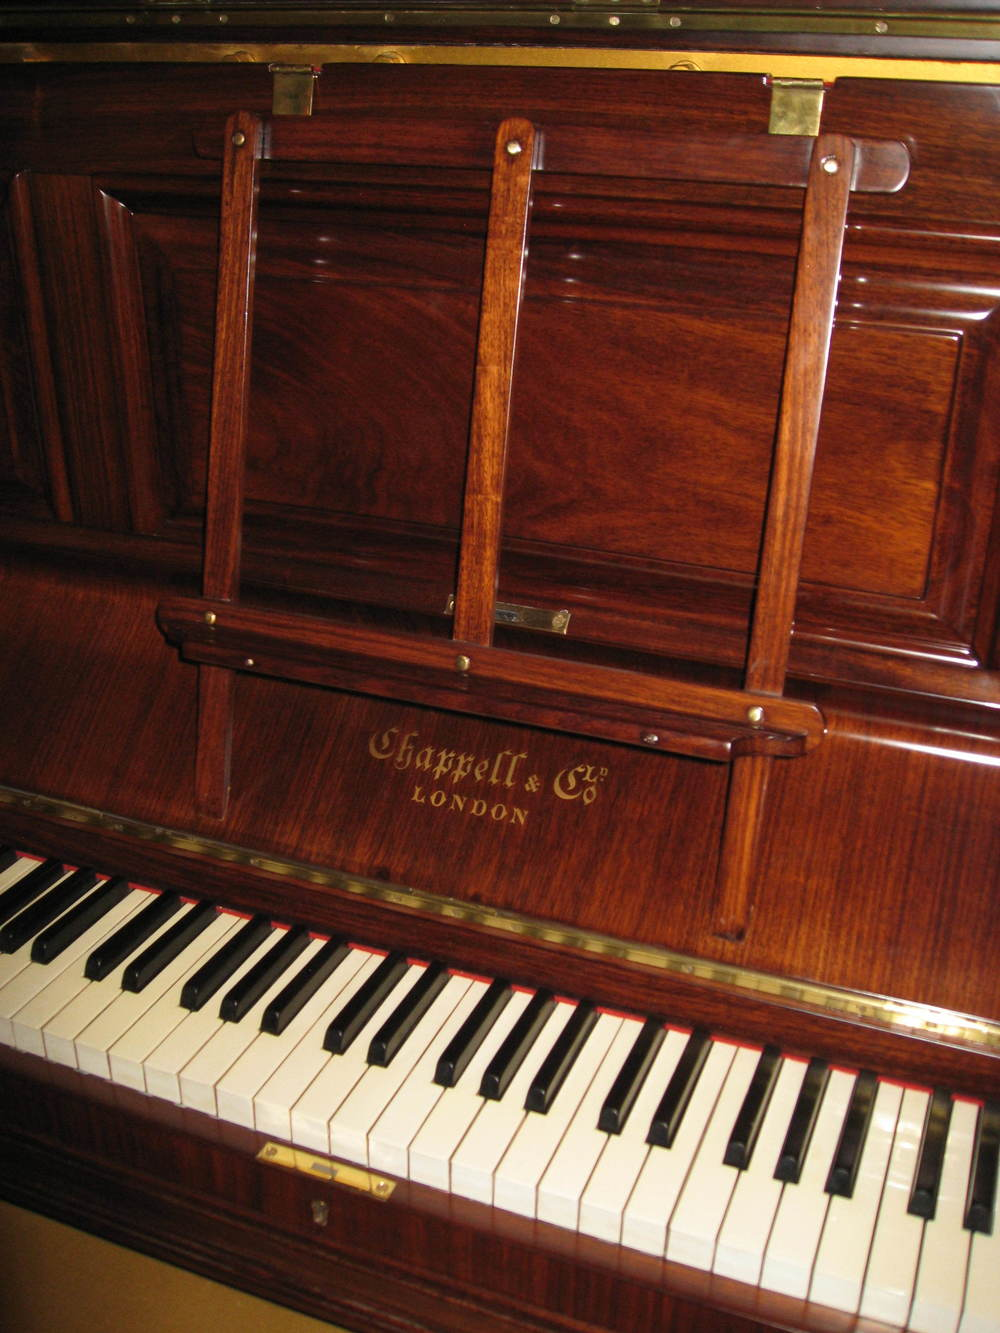 Chappell & Co Folding Music Desk